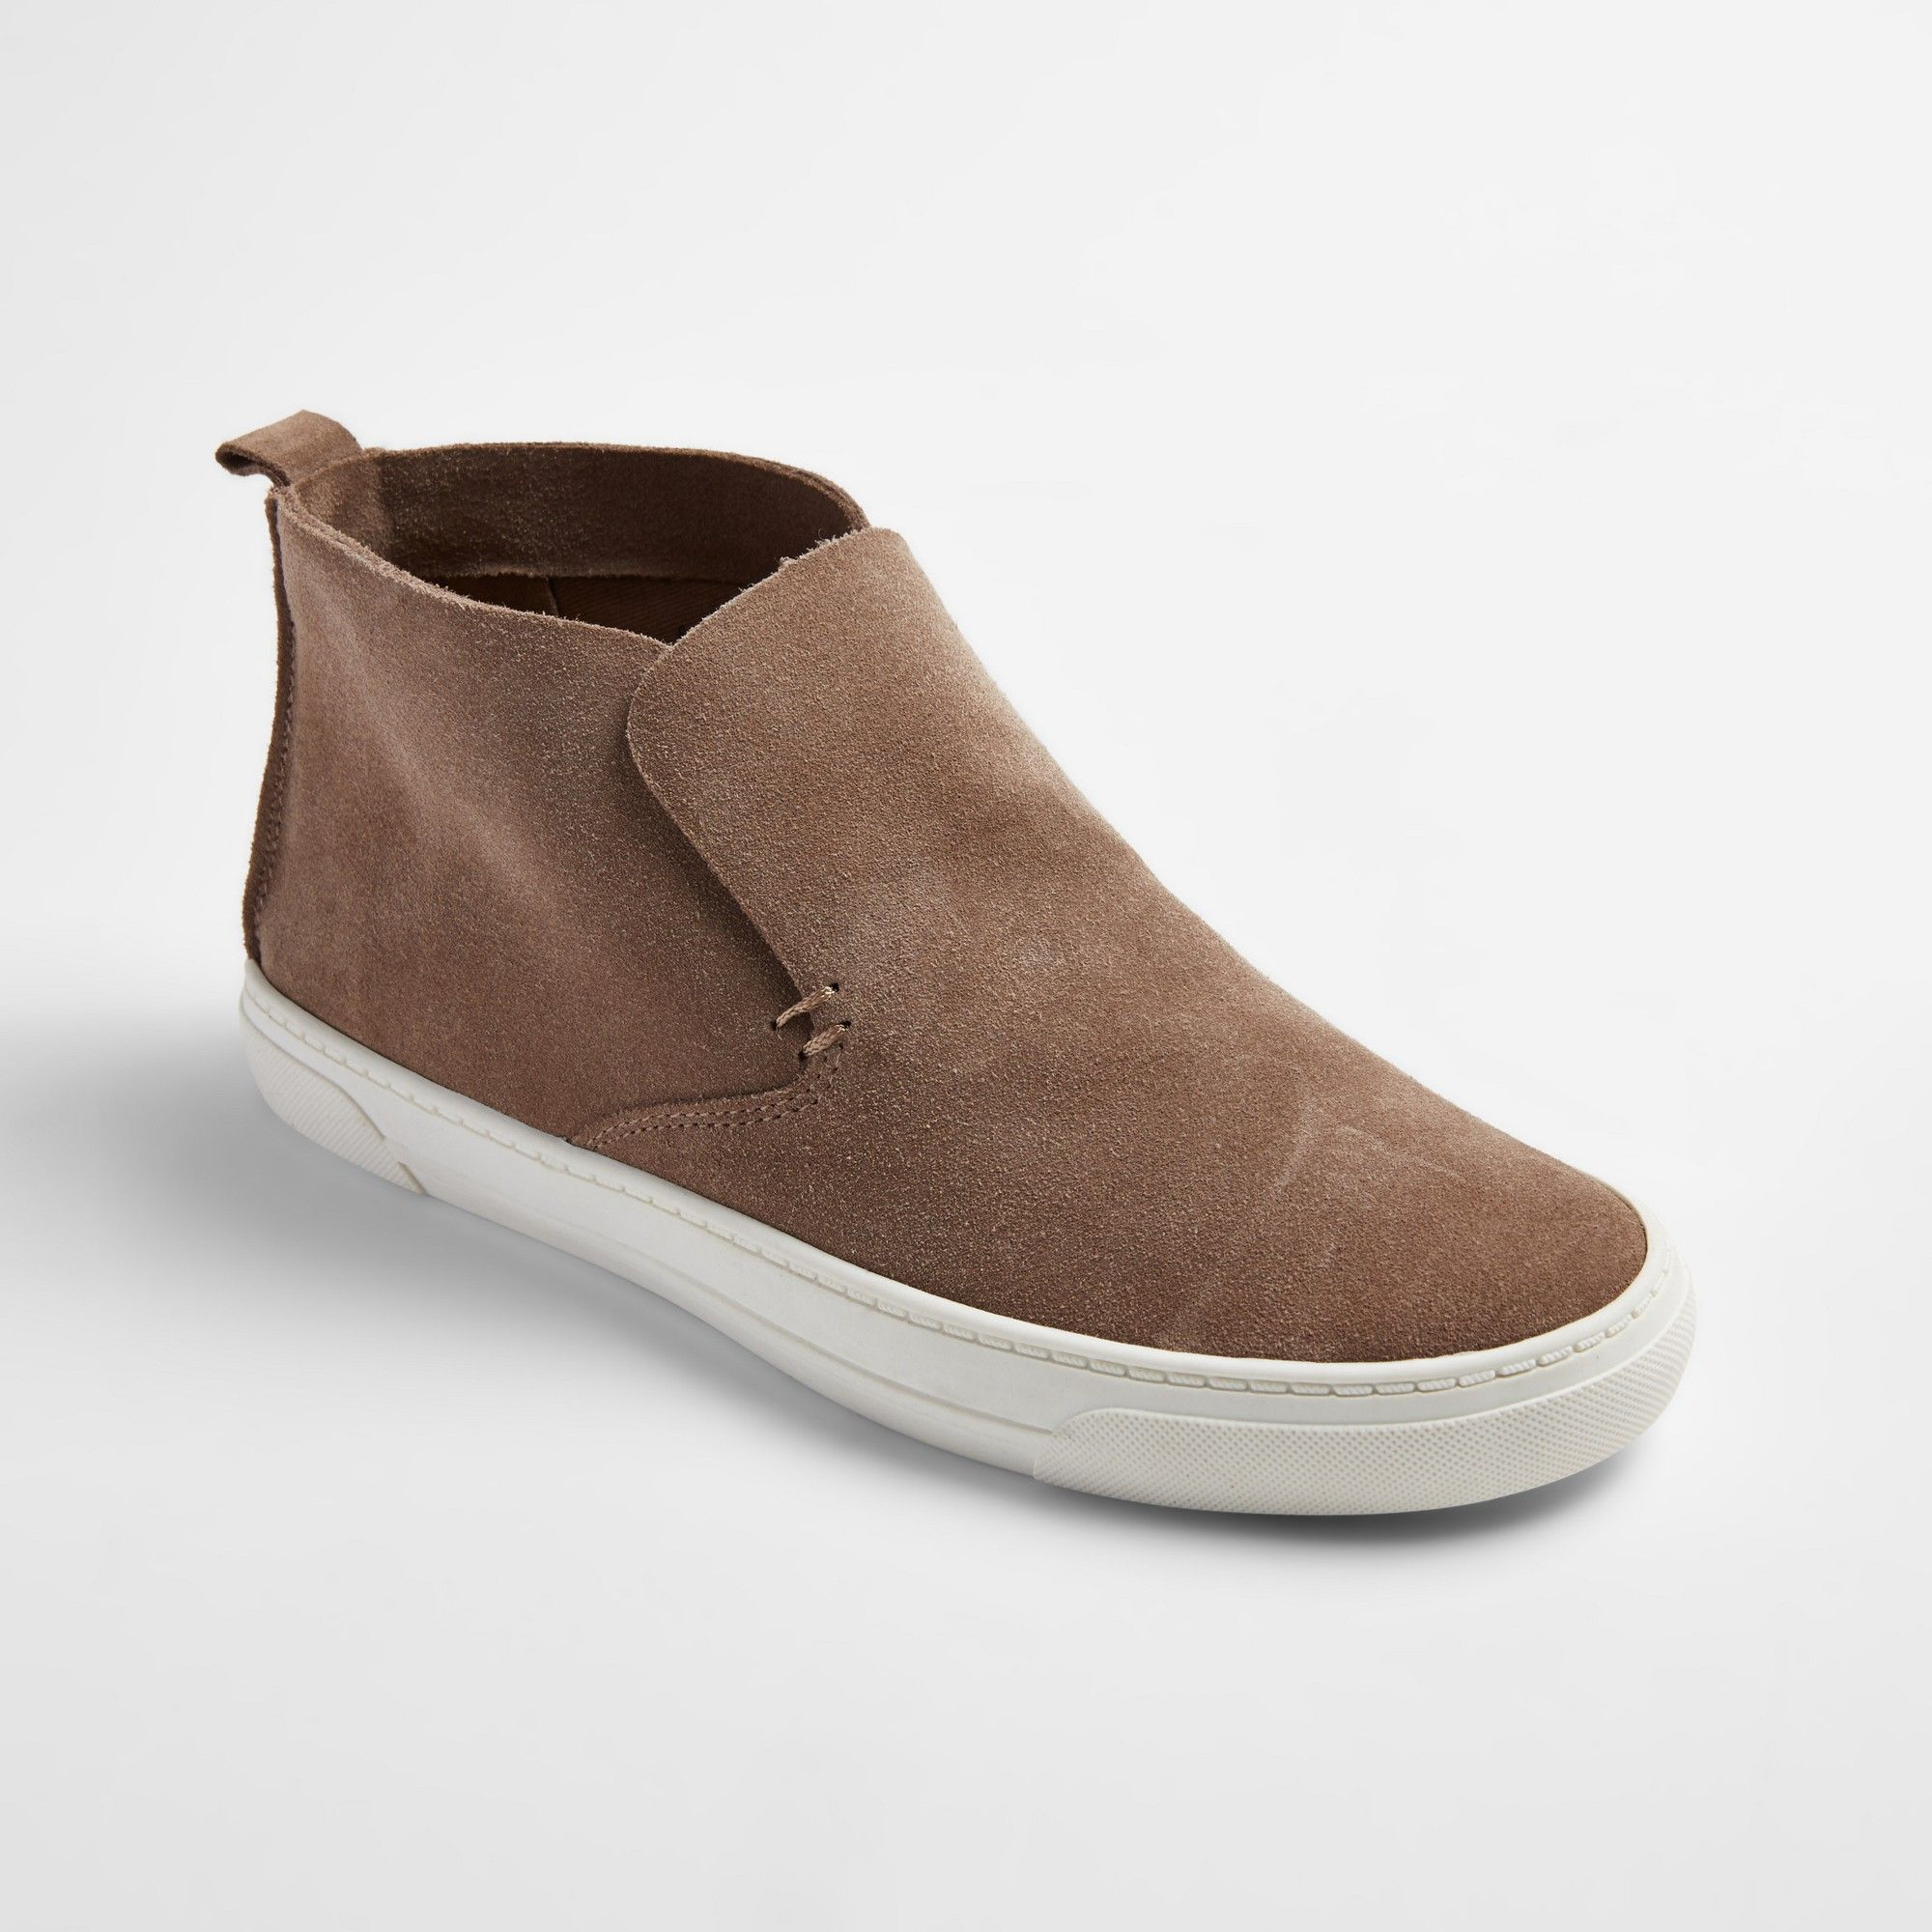 Women's dv Roselyn Suede High Top Sneakers - Taupe 9